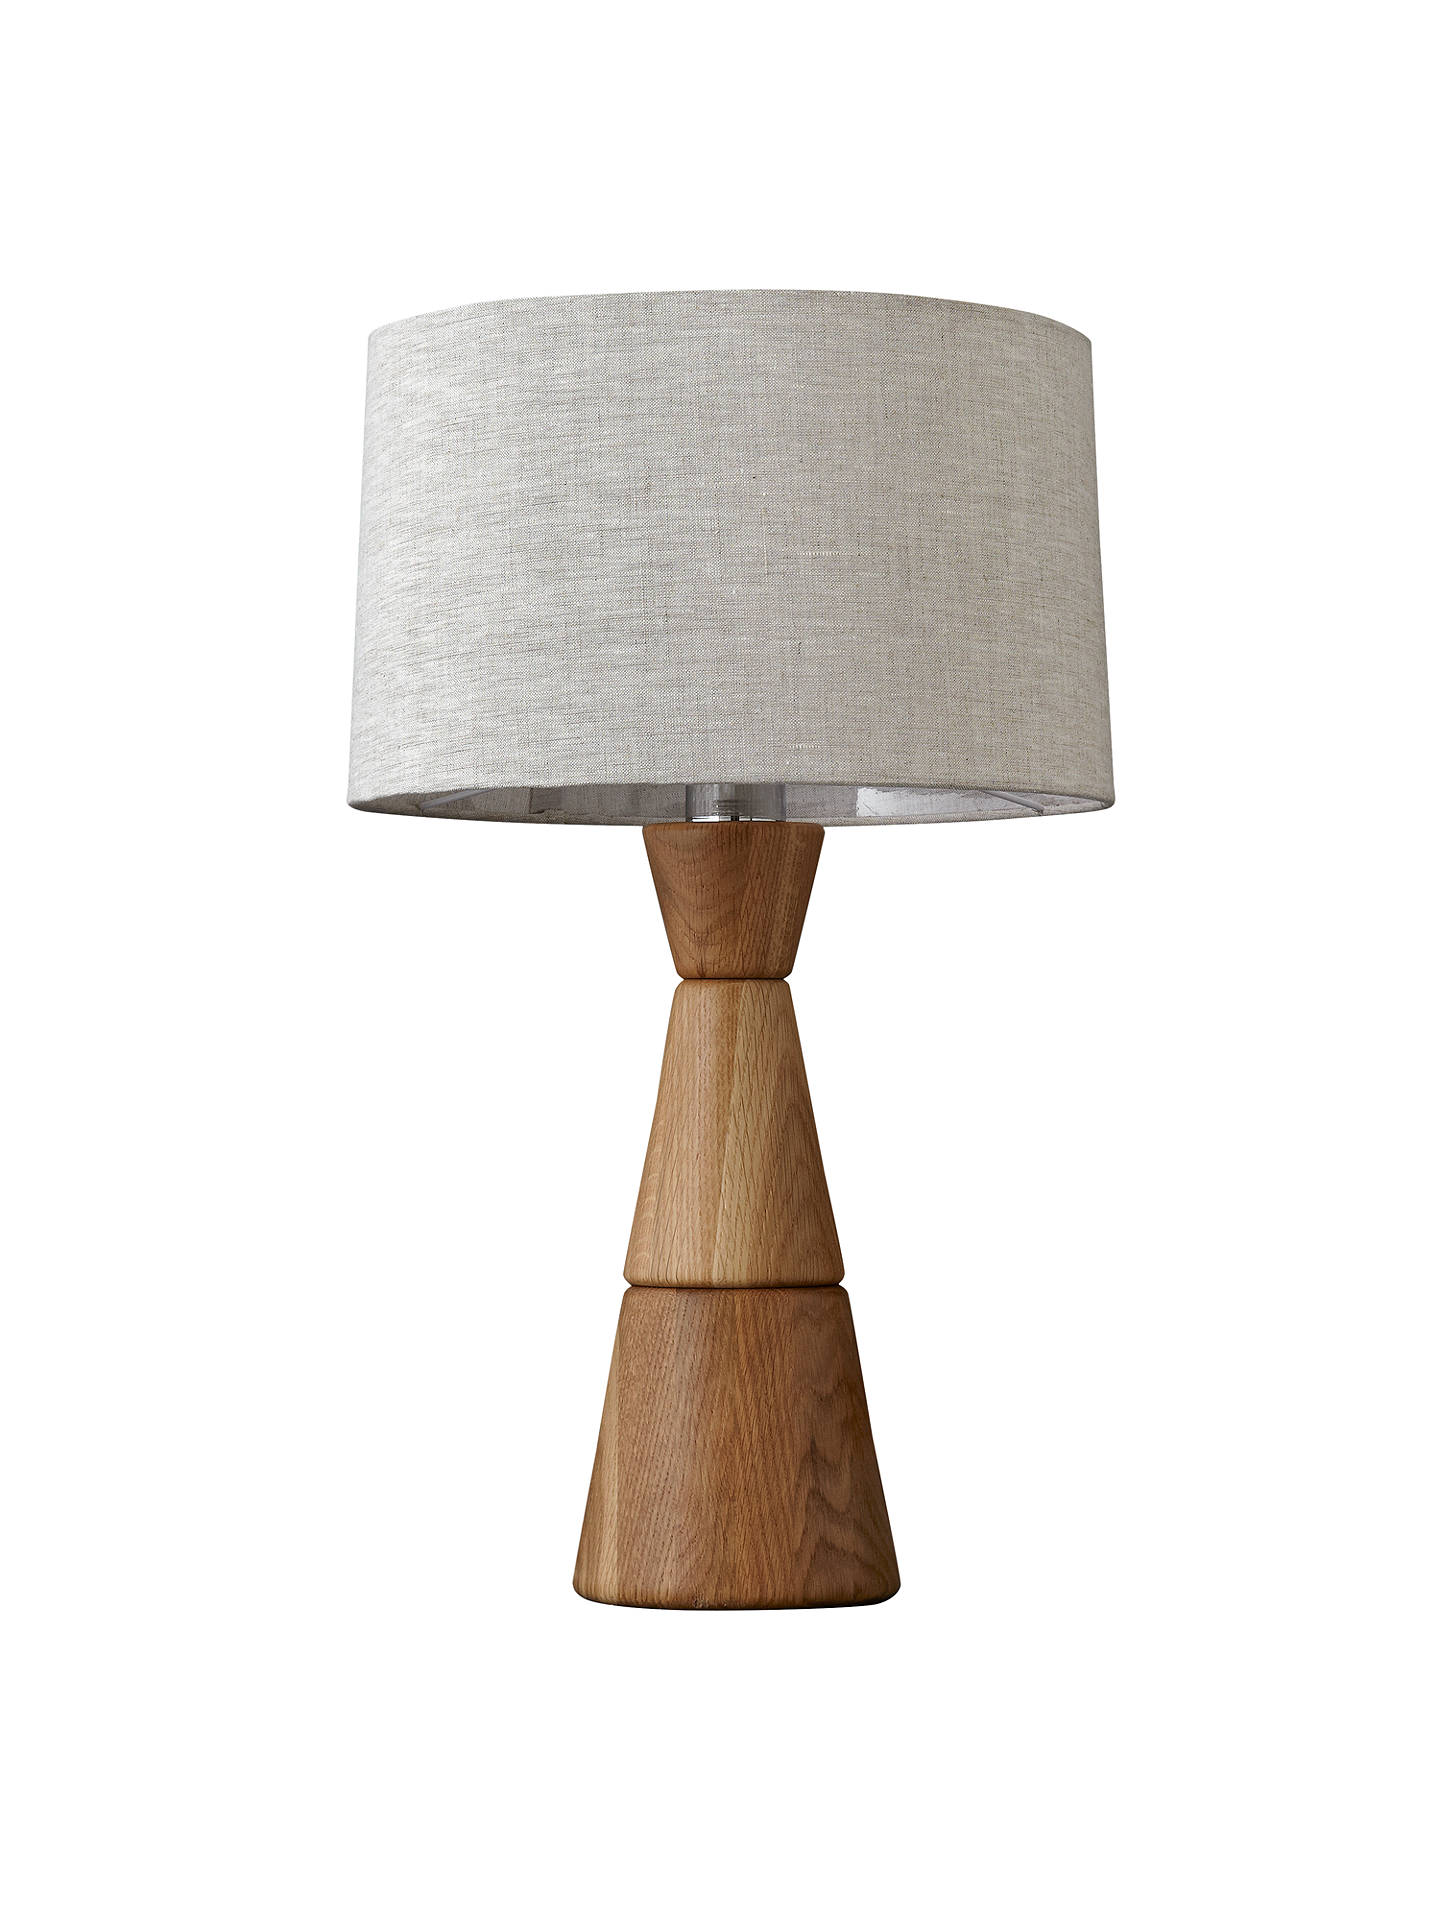 BuyBethan Gray for John Lewis Noah Table Lamp Online at johnlewis.com